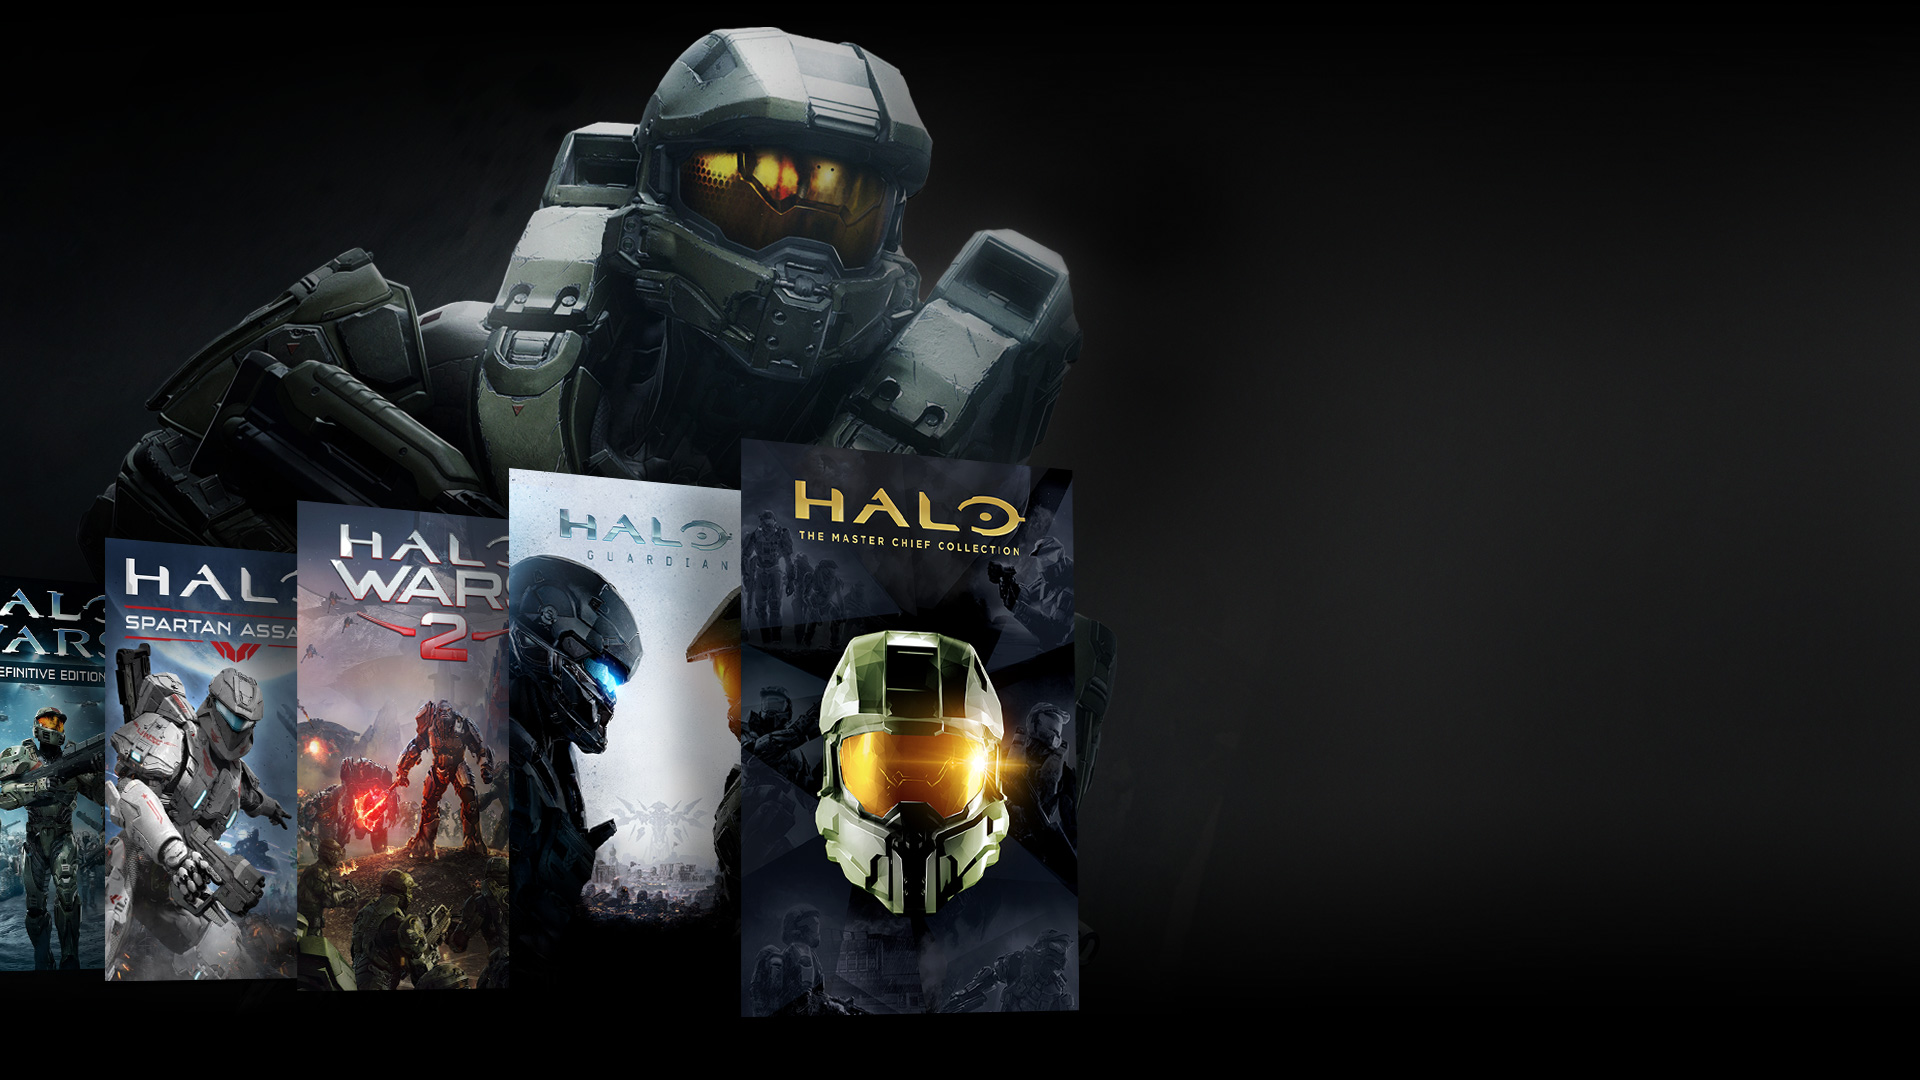 Front view of Halo character standing behind collage of Halo games